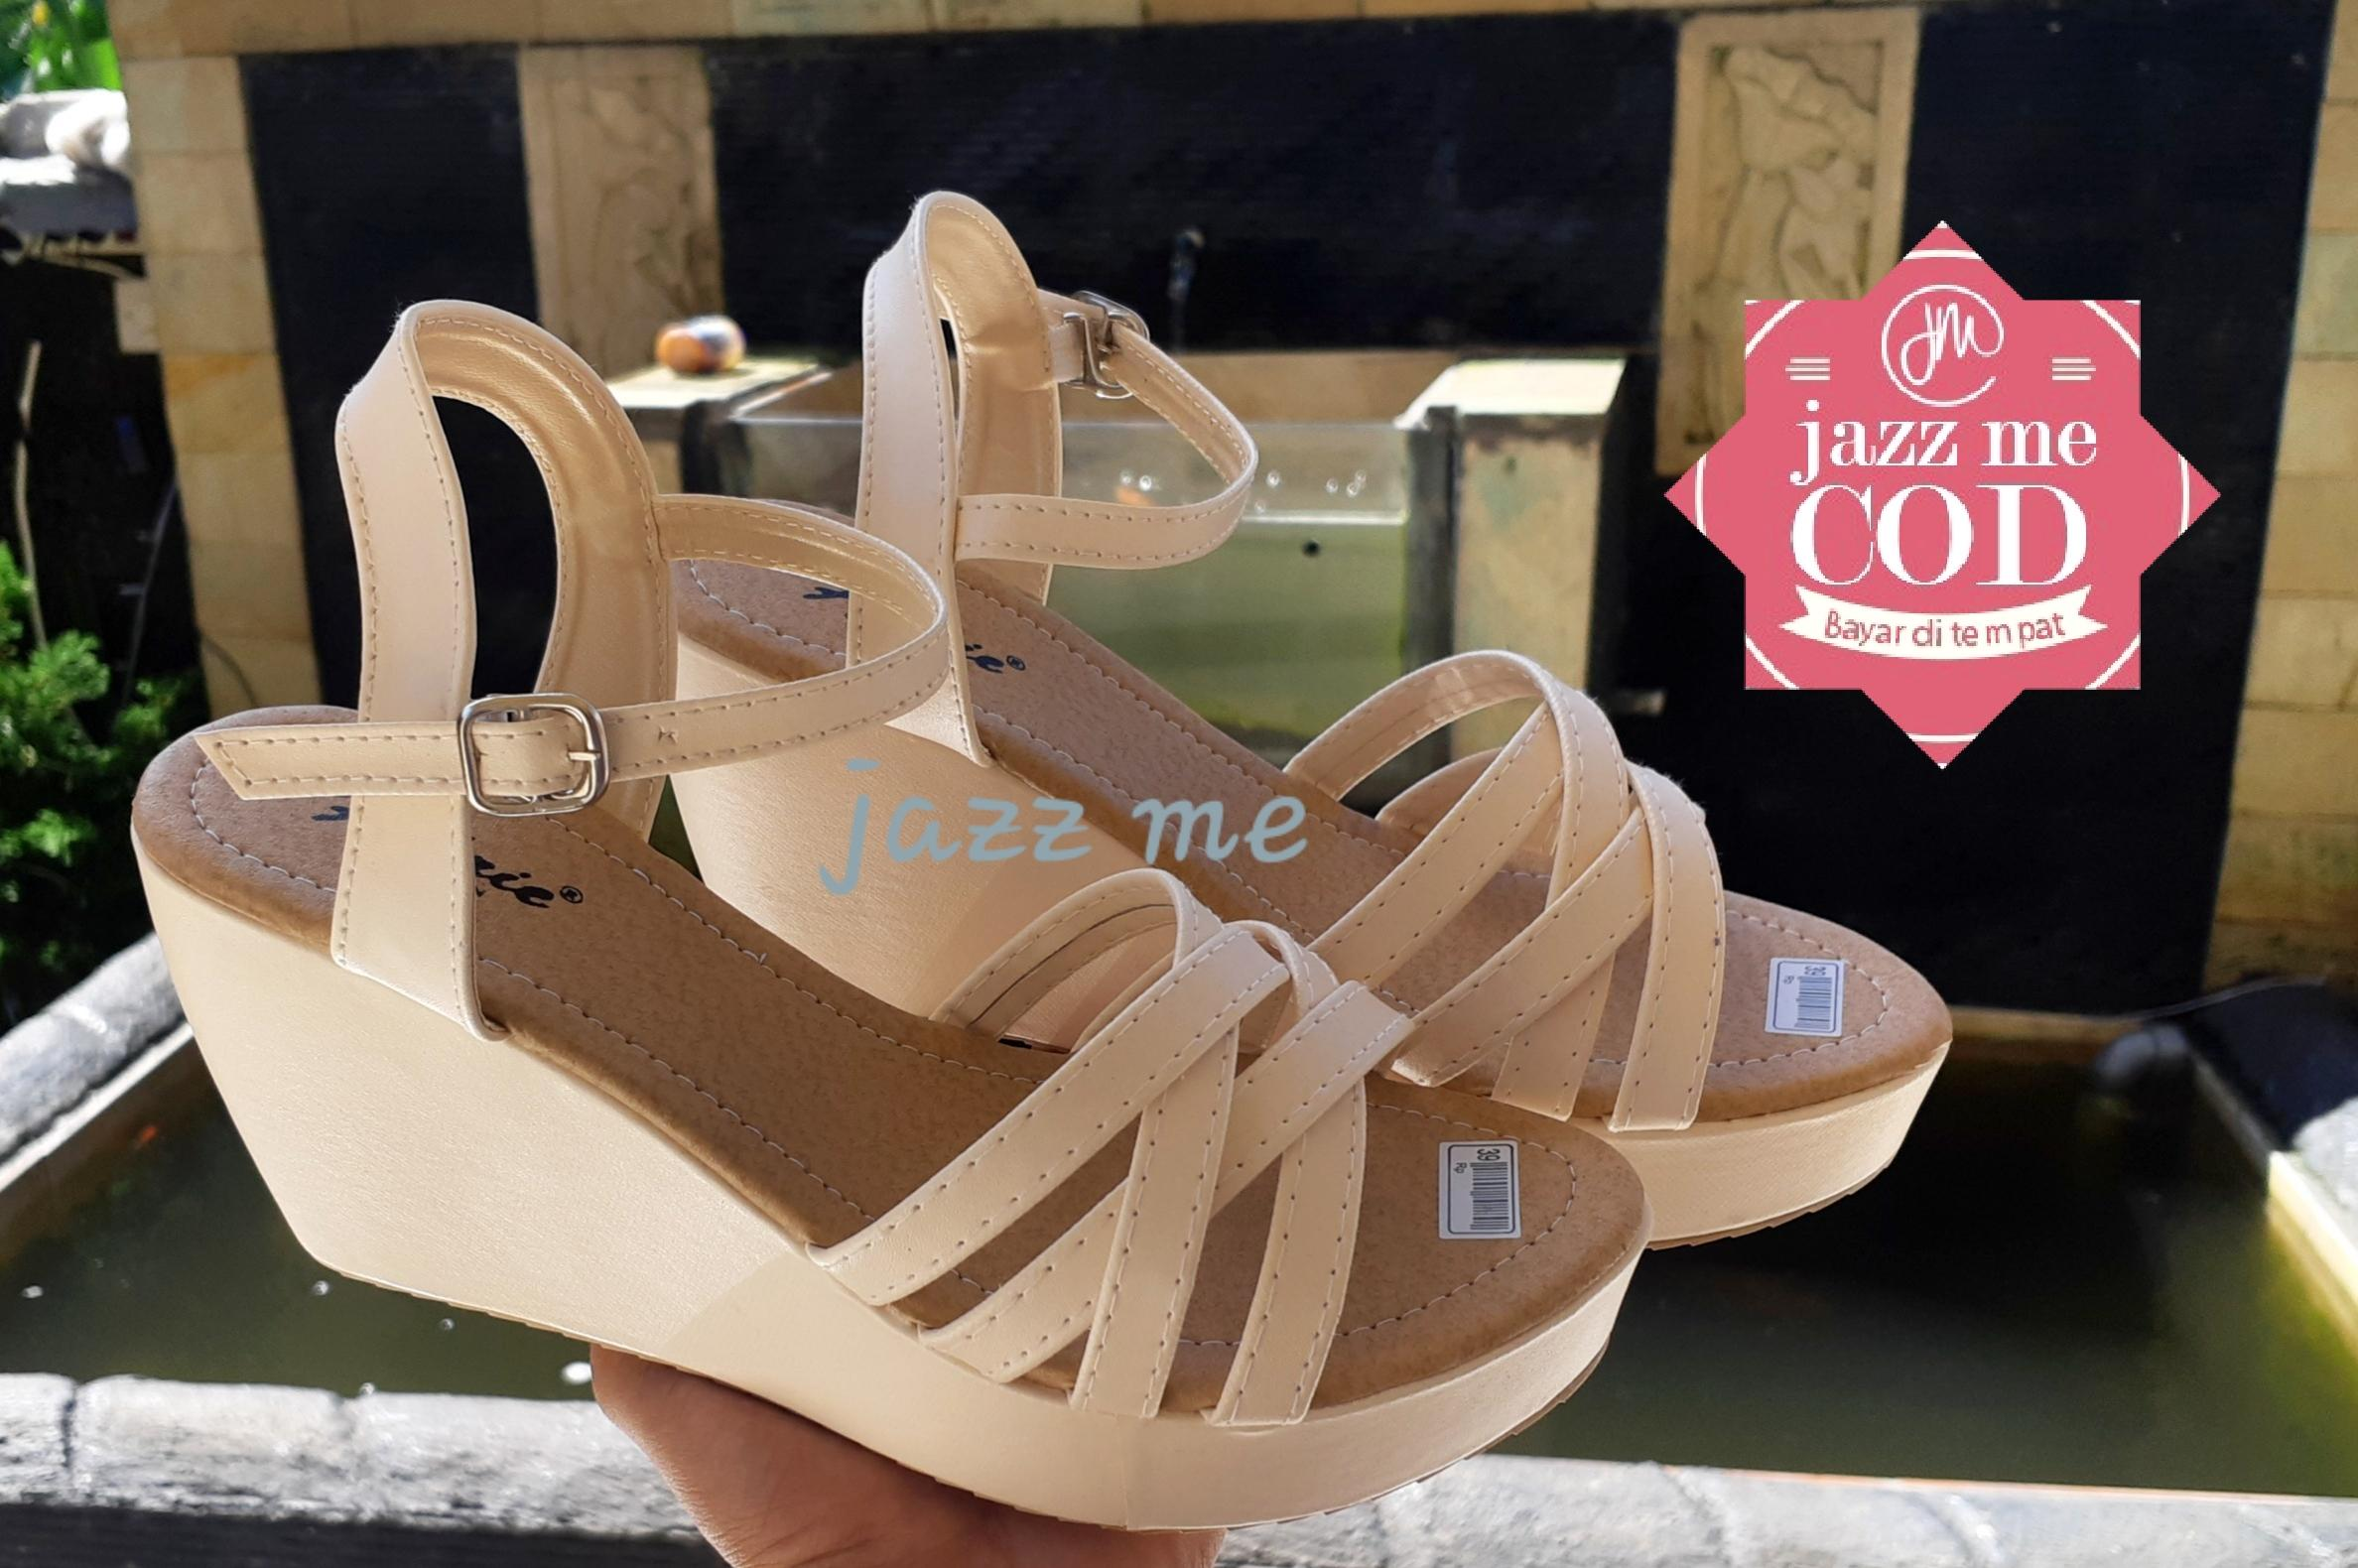 Jazz Me New Sendal Wedges Silang Fh-Oo1 By Jazz Me.